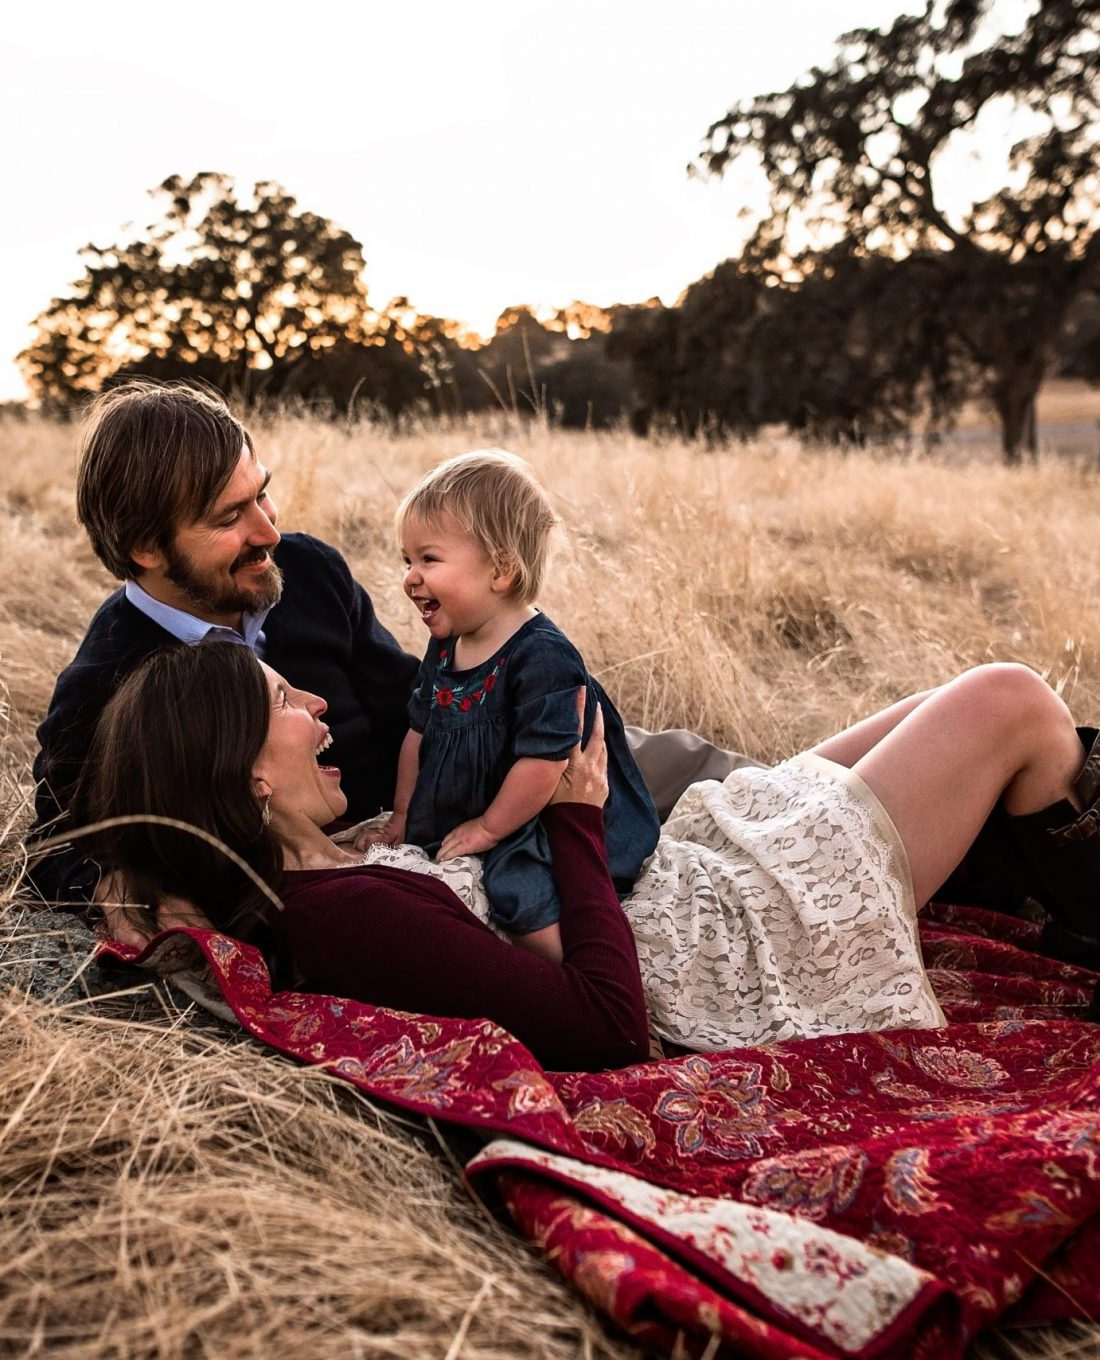 sunset family photos, family sessions at sunset, beach sessions summer sunset